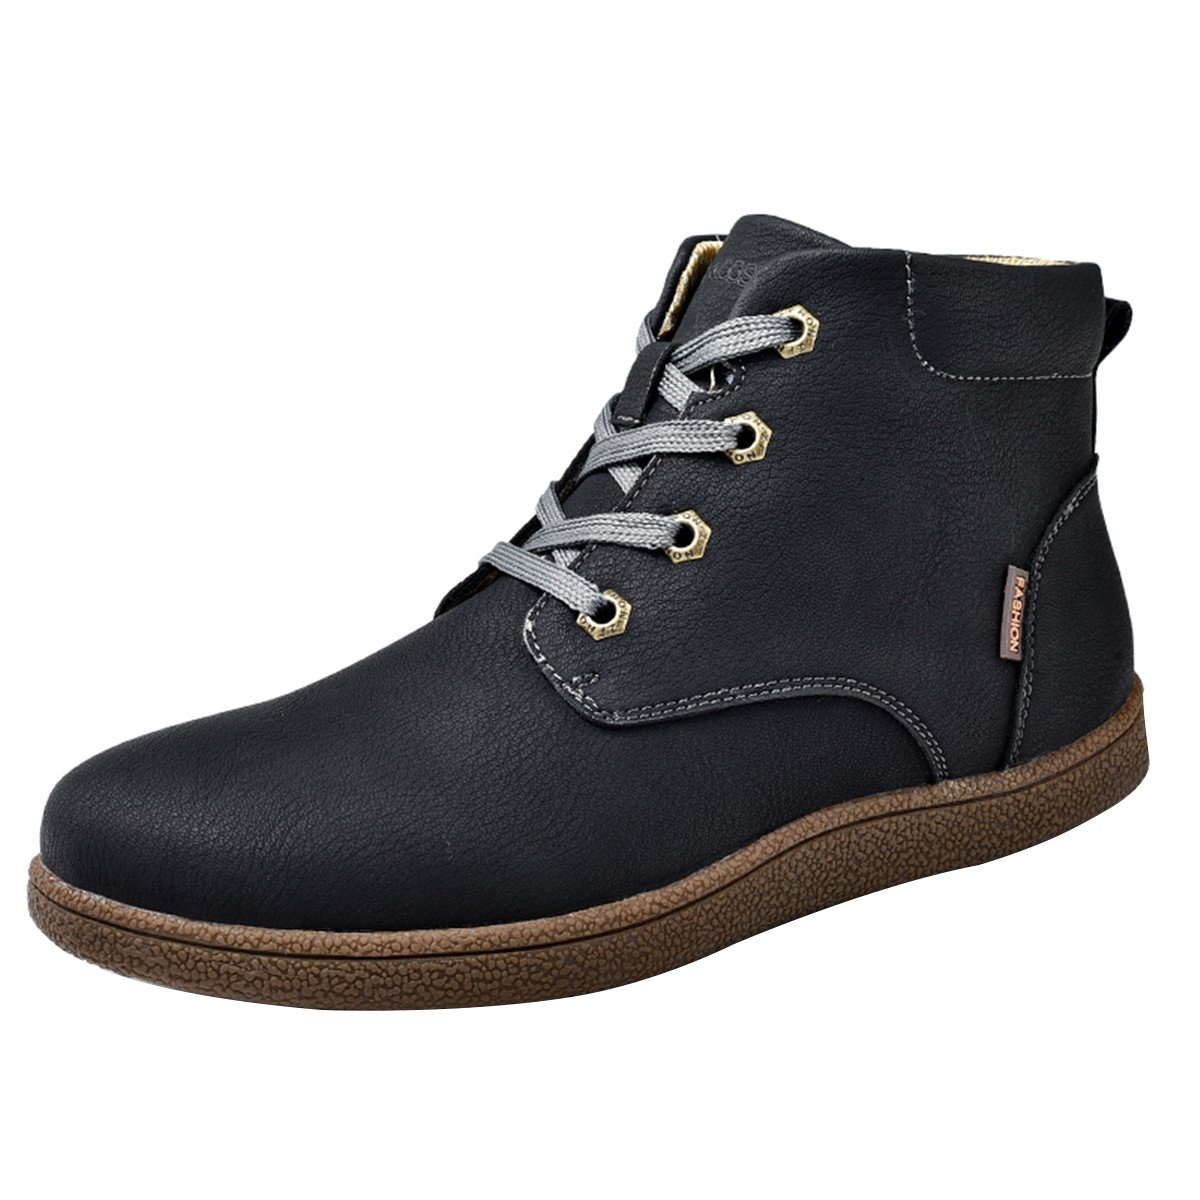 Gracosy Martin boots for Men, Men's Fashion Leather Lace up Boots Winter Cotton Lining Shoes Waterproof Boots Black Tag 43 by Gracosy (Image #1)